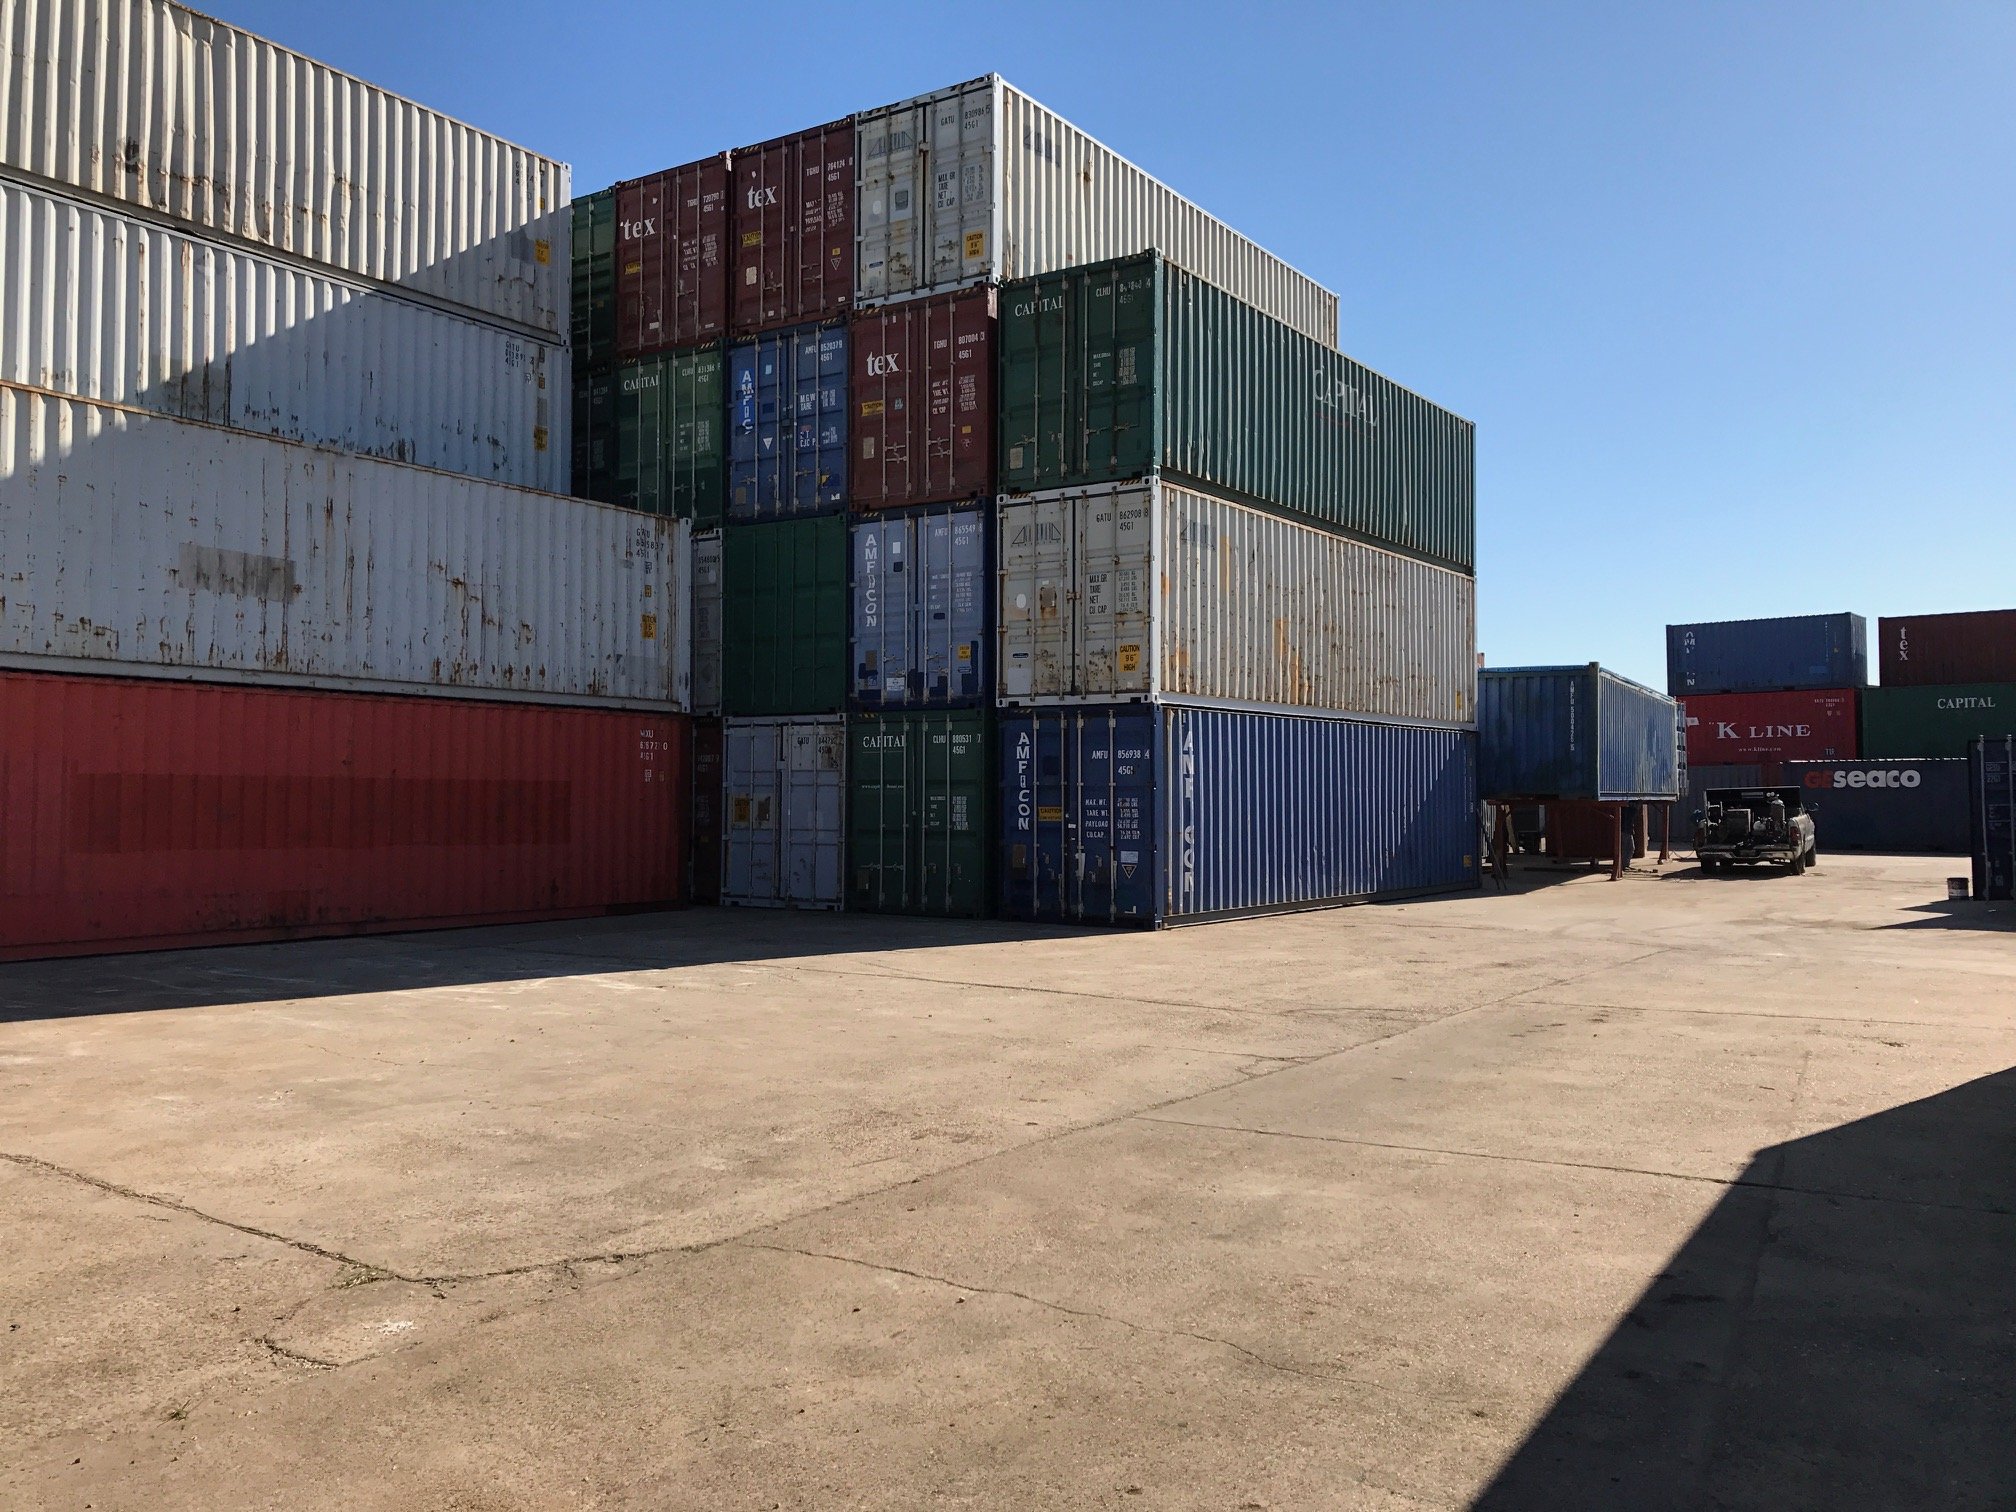 40' CONTAINER STACK